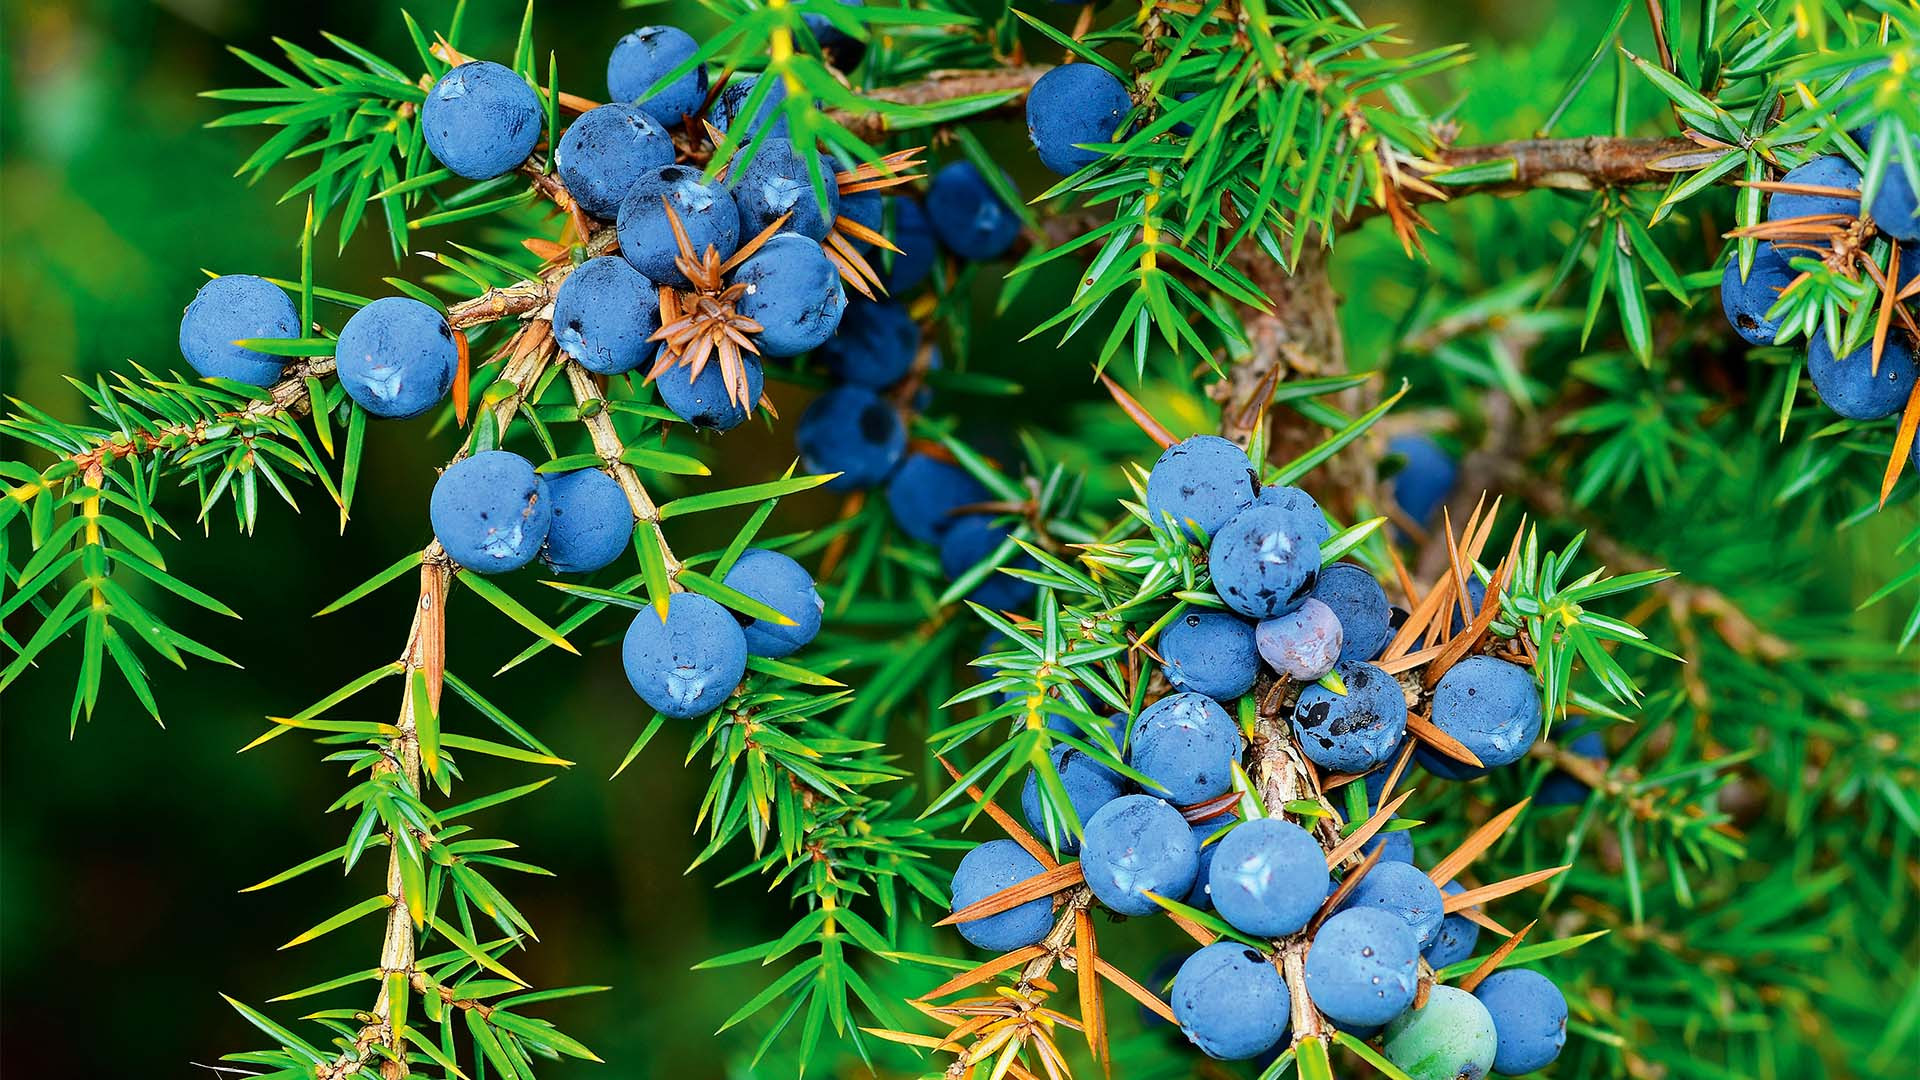 Juniper berries growing on a plant in Italy